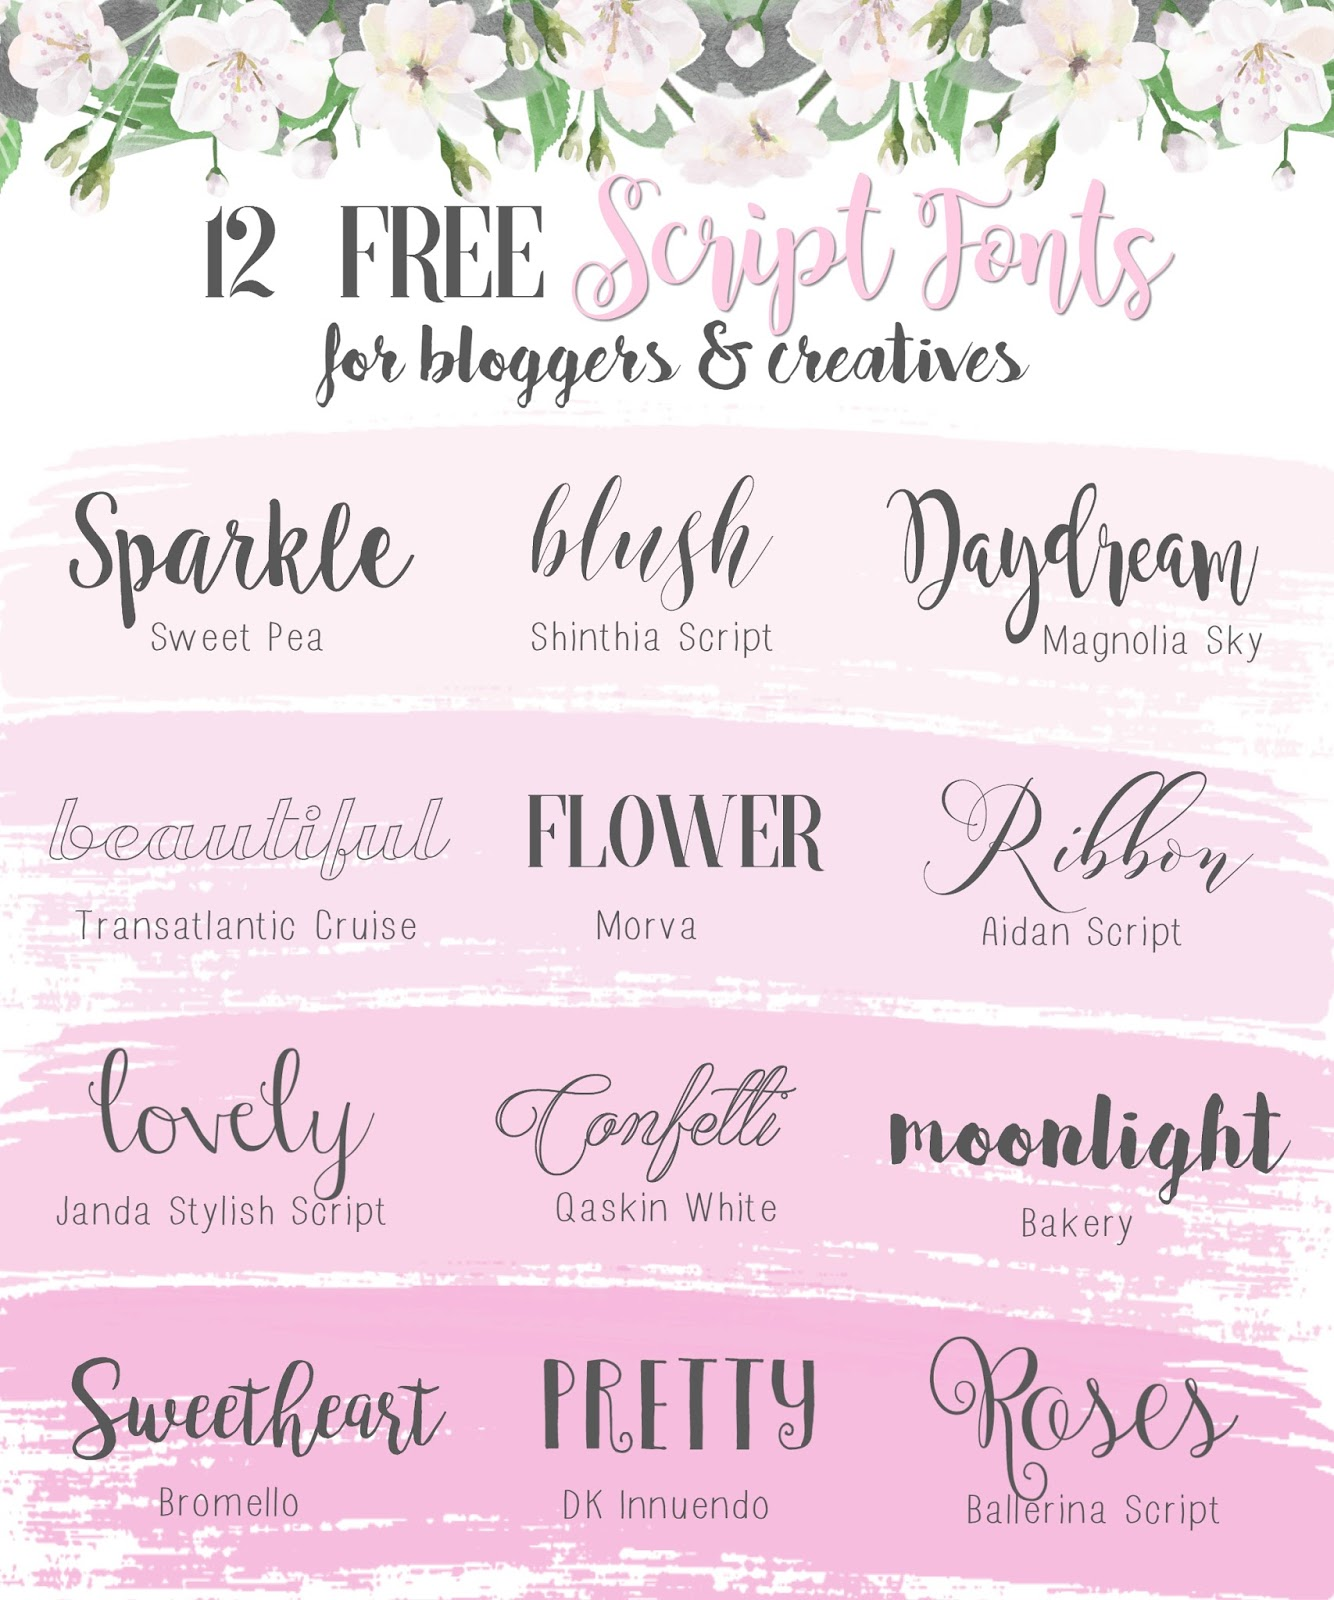 Beauty Font For Instagram: My Favourite Free Script Fonts For Blogging